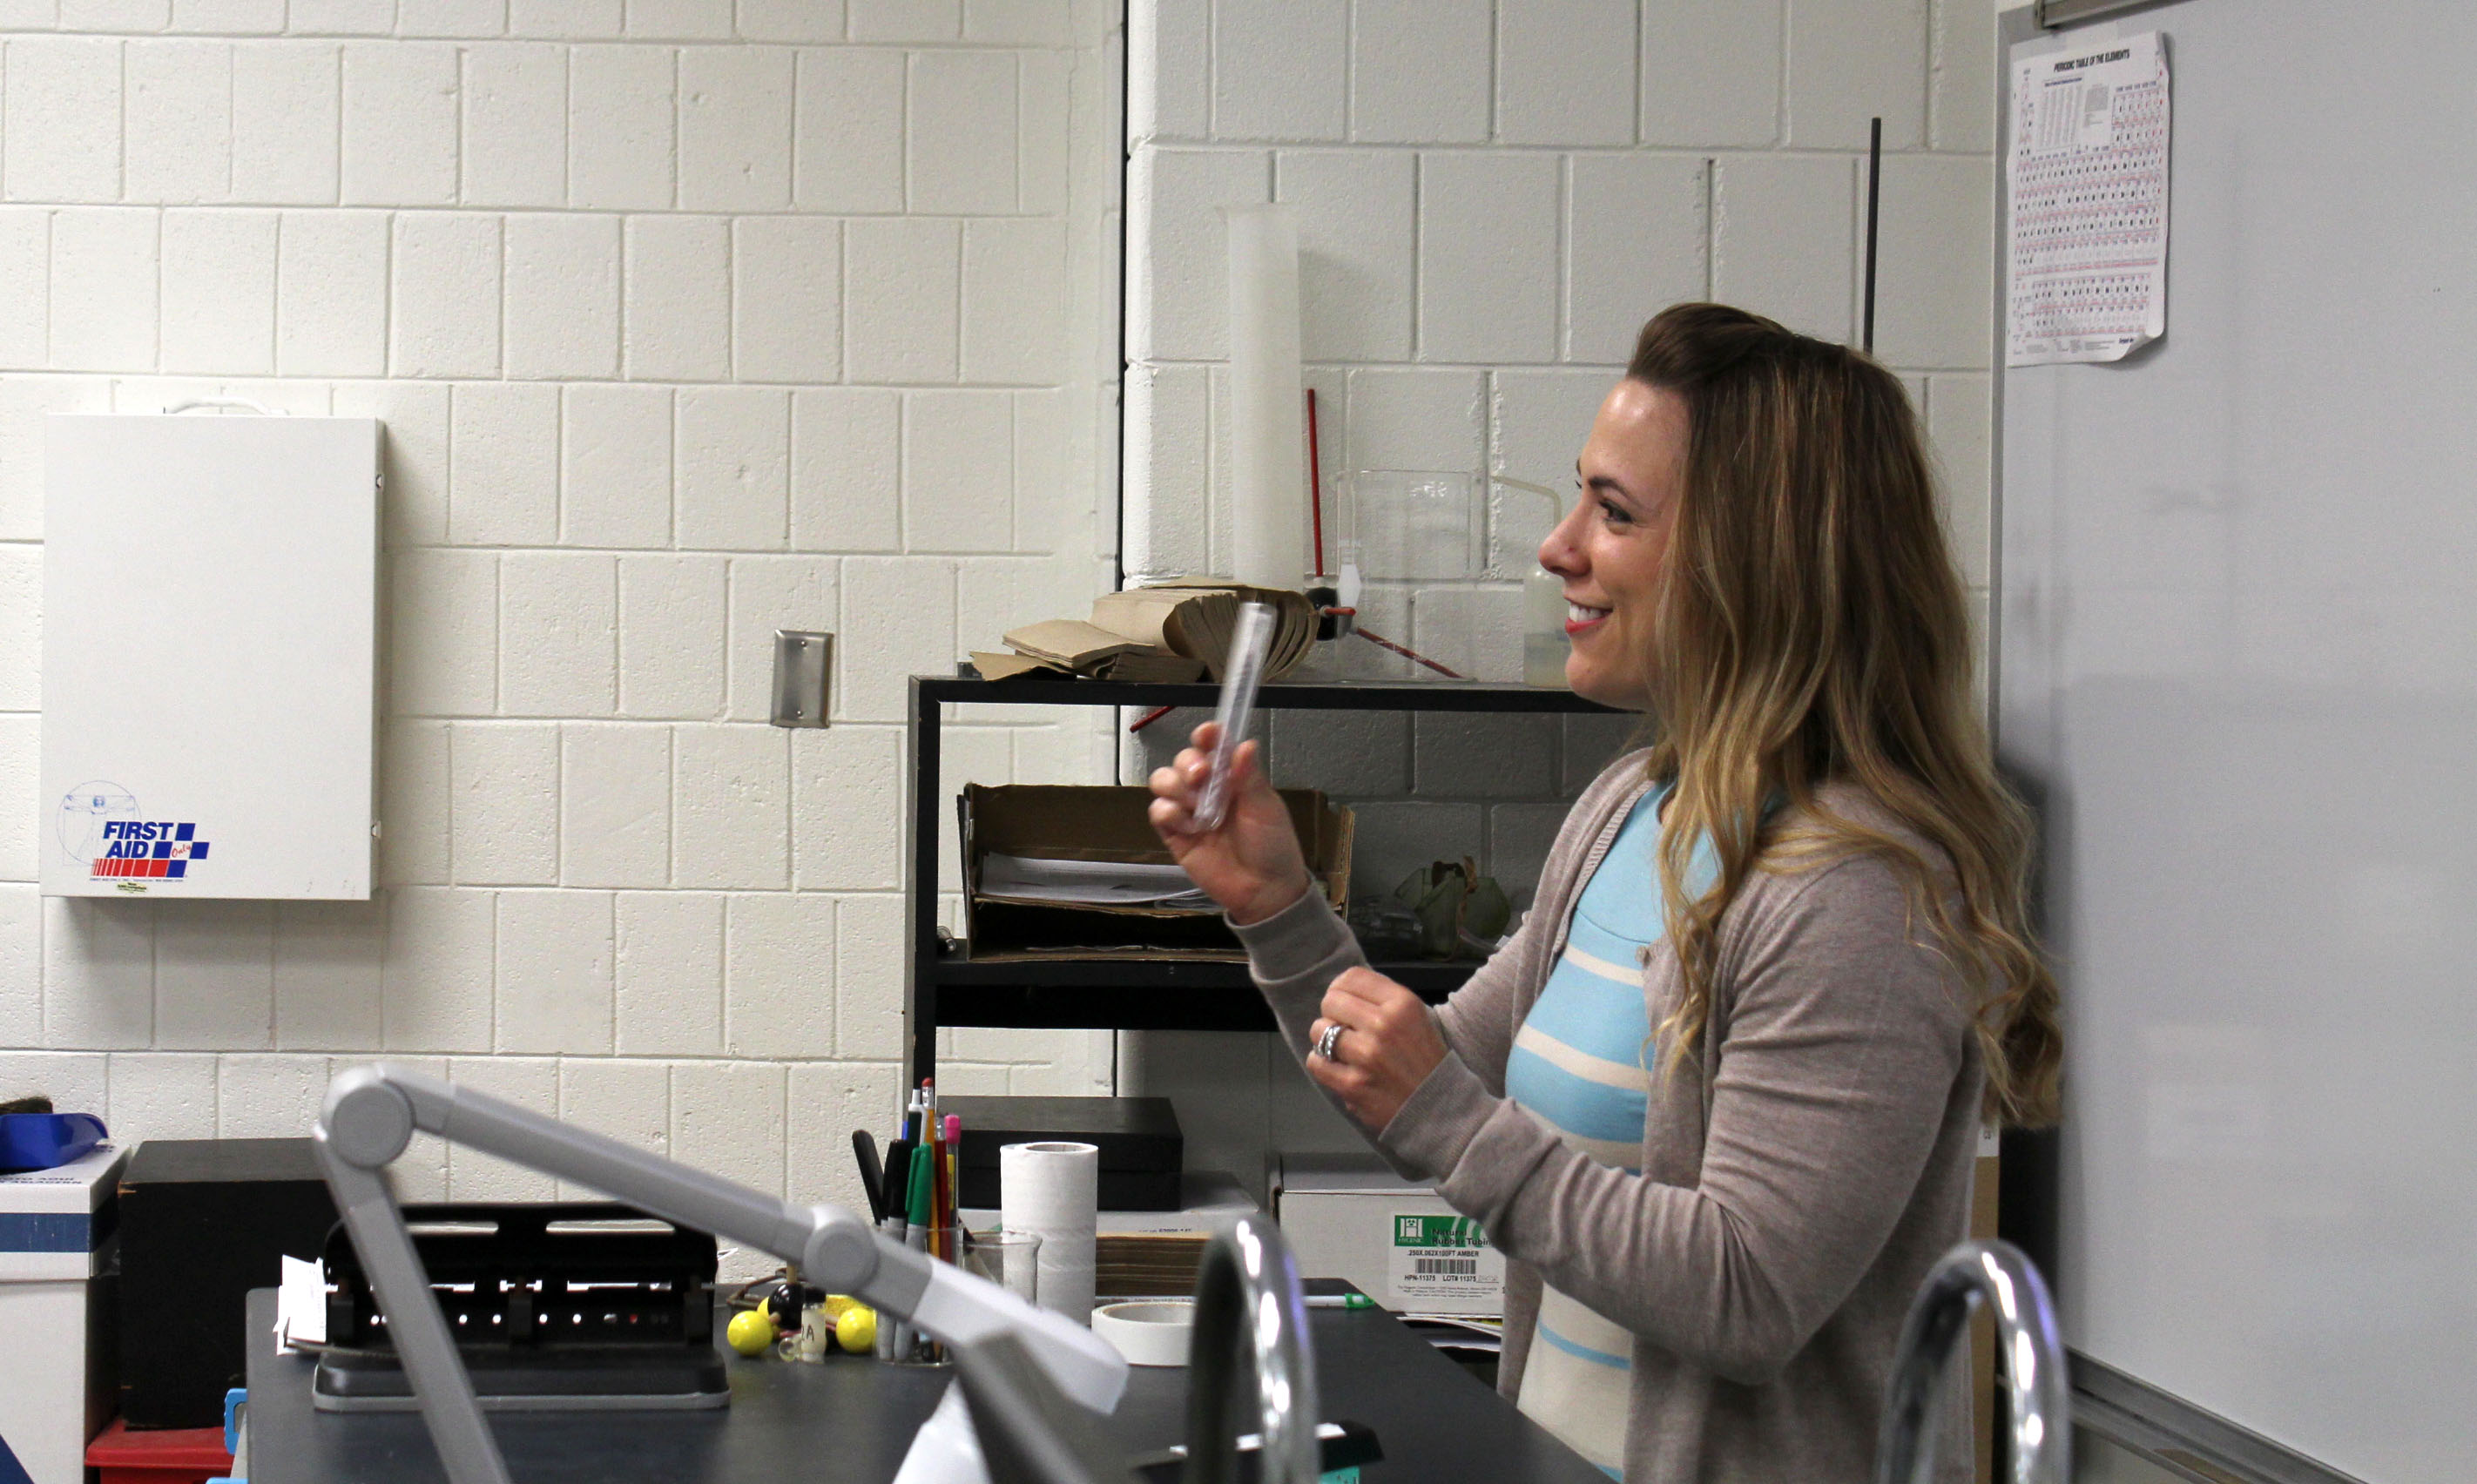 Lake Land College chemistry instructor Claire Tornow  briefs her CHM-120 students before their lab on April 18. Tornow didn't expect to become a teacher, but now feels rewarded by the lasting connections she's made with her students.